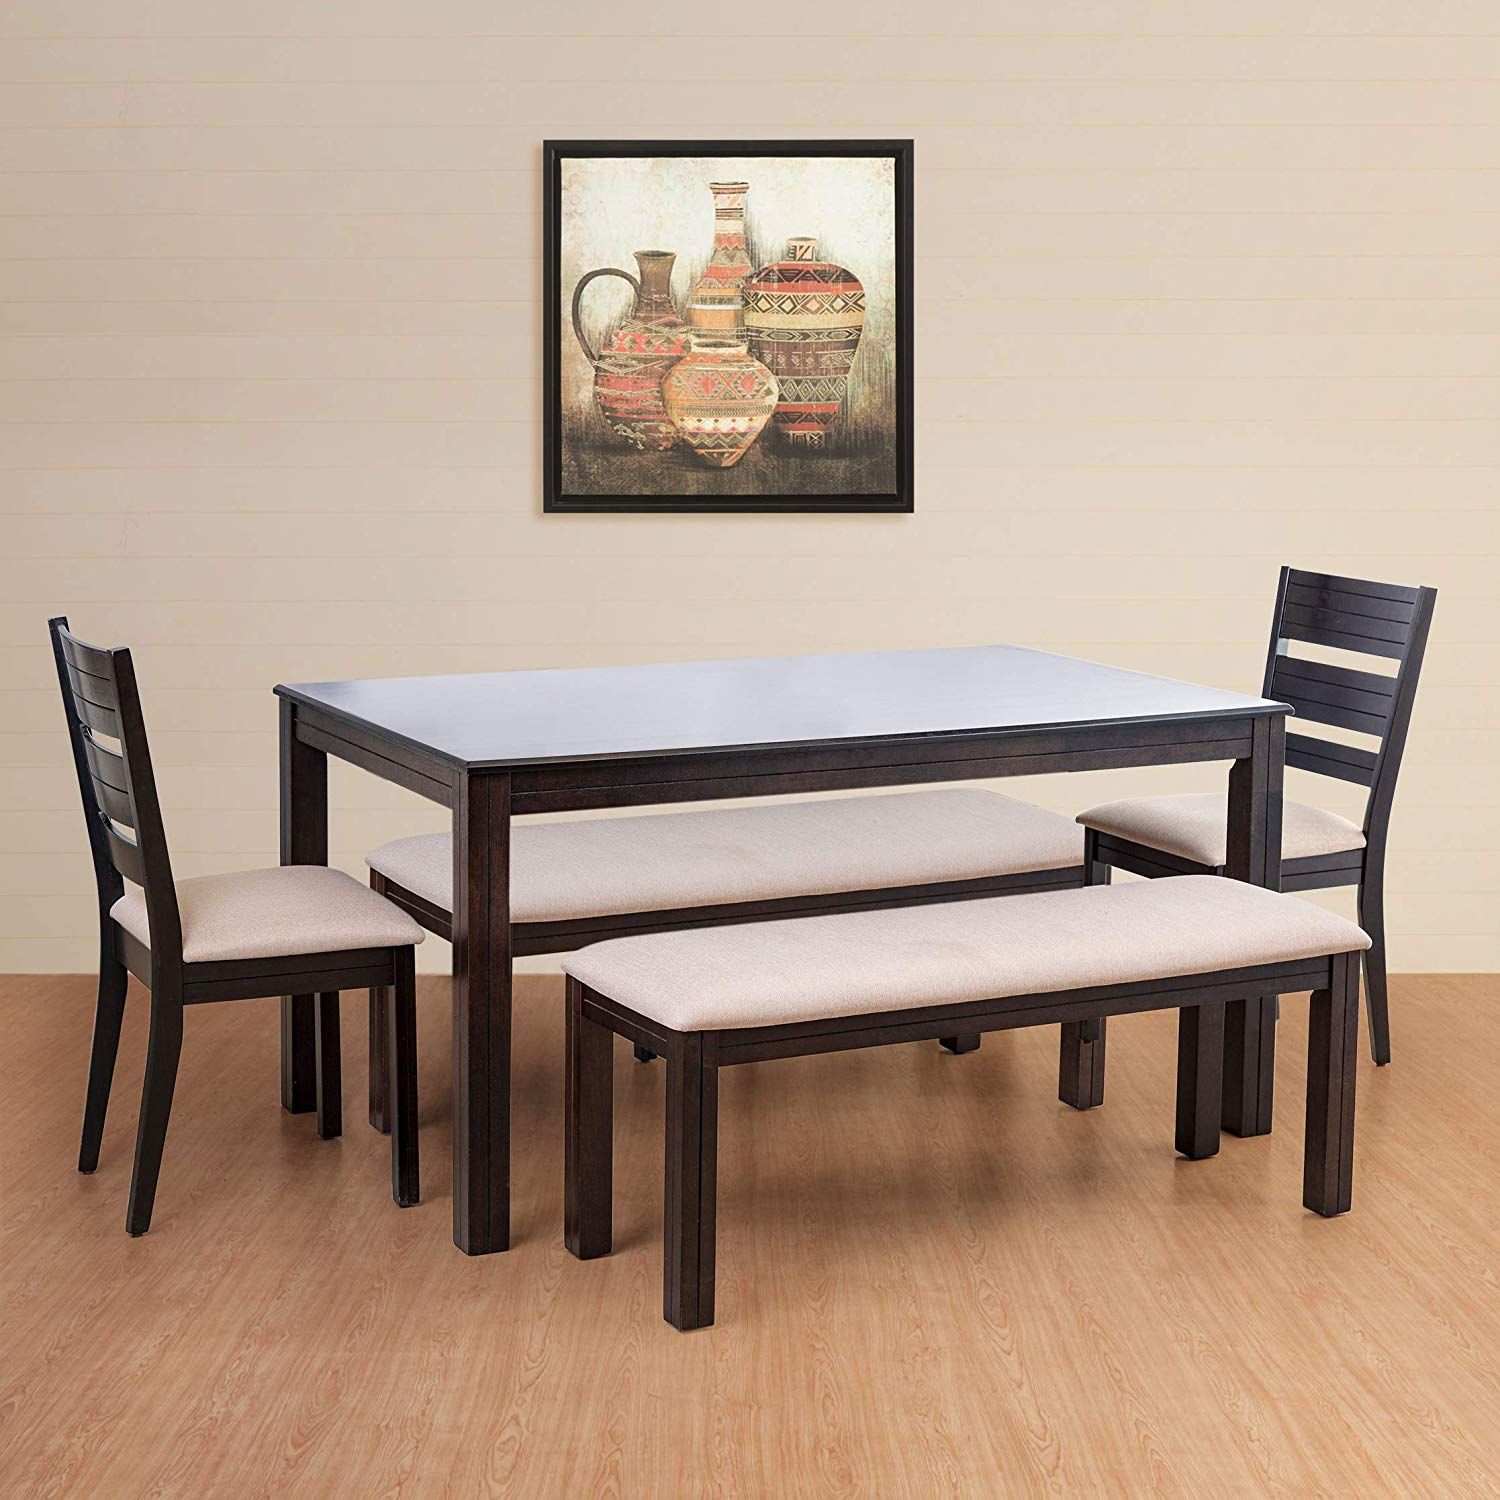 Furniture photography in delhi 021